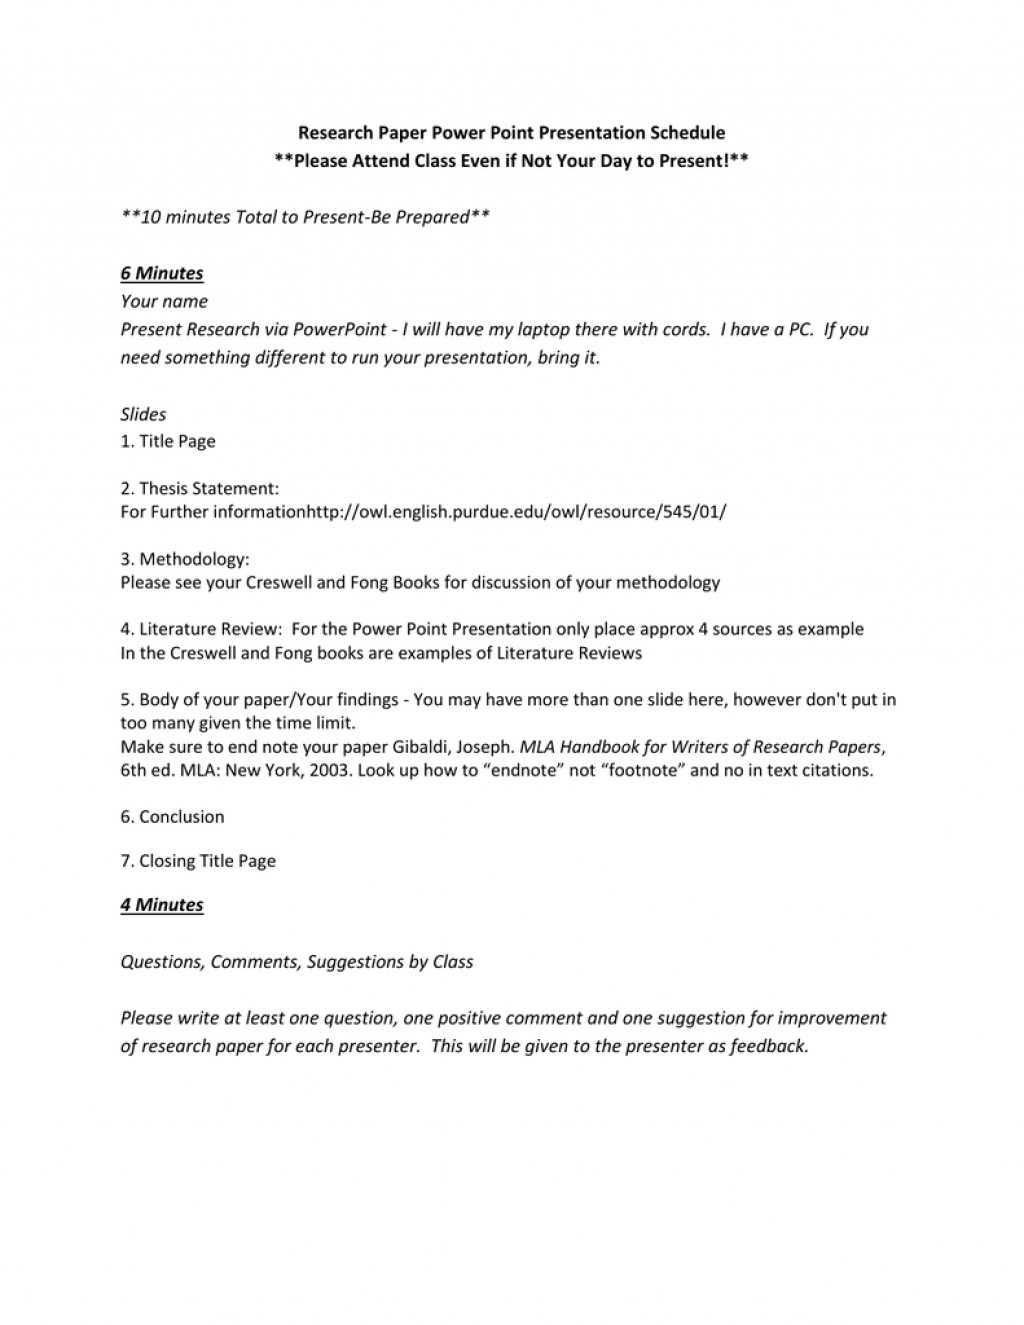 012 Research Paper 009781447 1 How To Make Staggering Ppt Prepare A Powerpoint Presentation Large